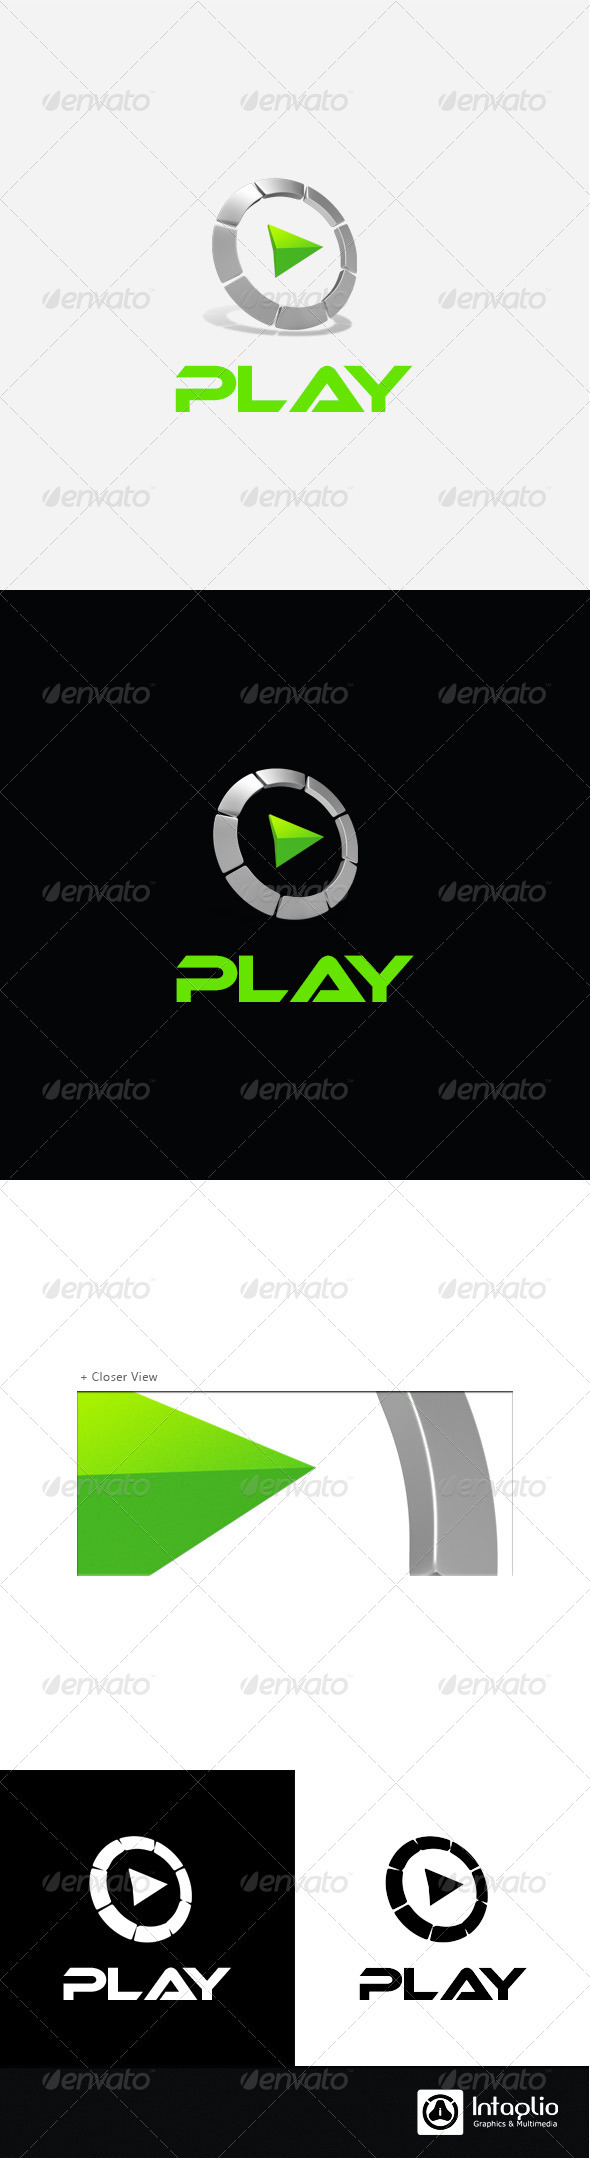 Gaming / Multimedia Logo - Play - 3d Abstract